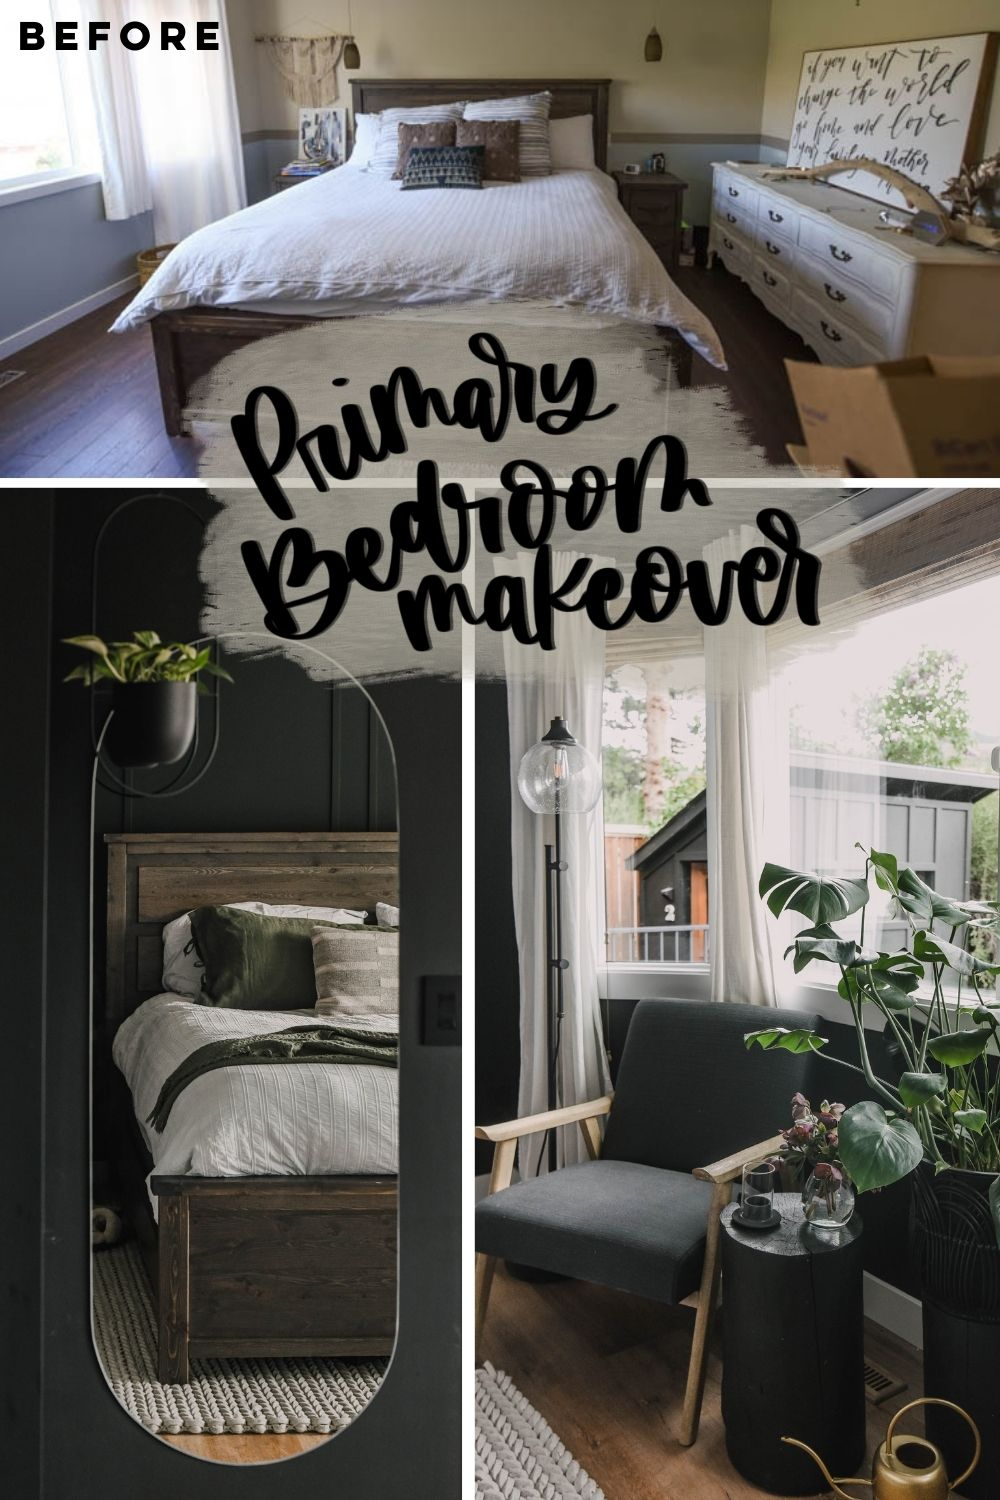 BEFORE AND AFTER BEDROOM TRANSFORMATION